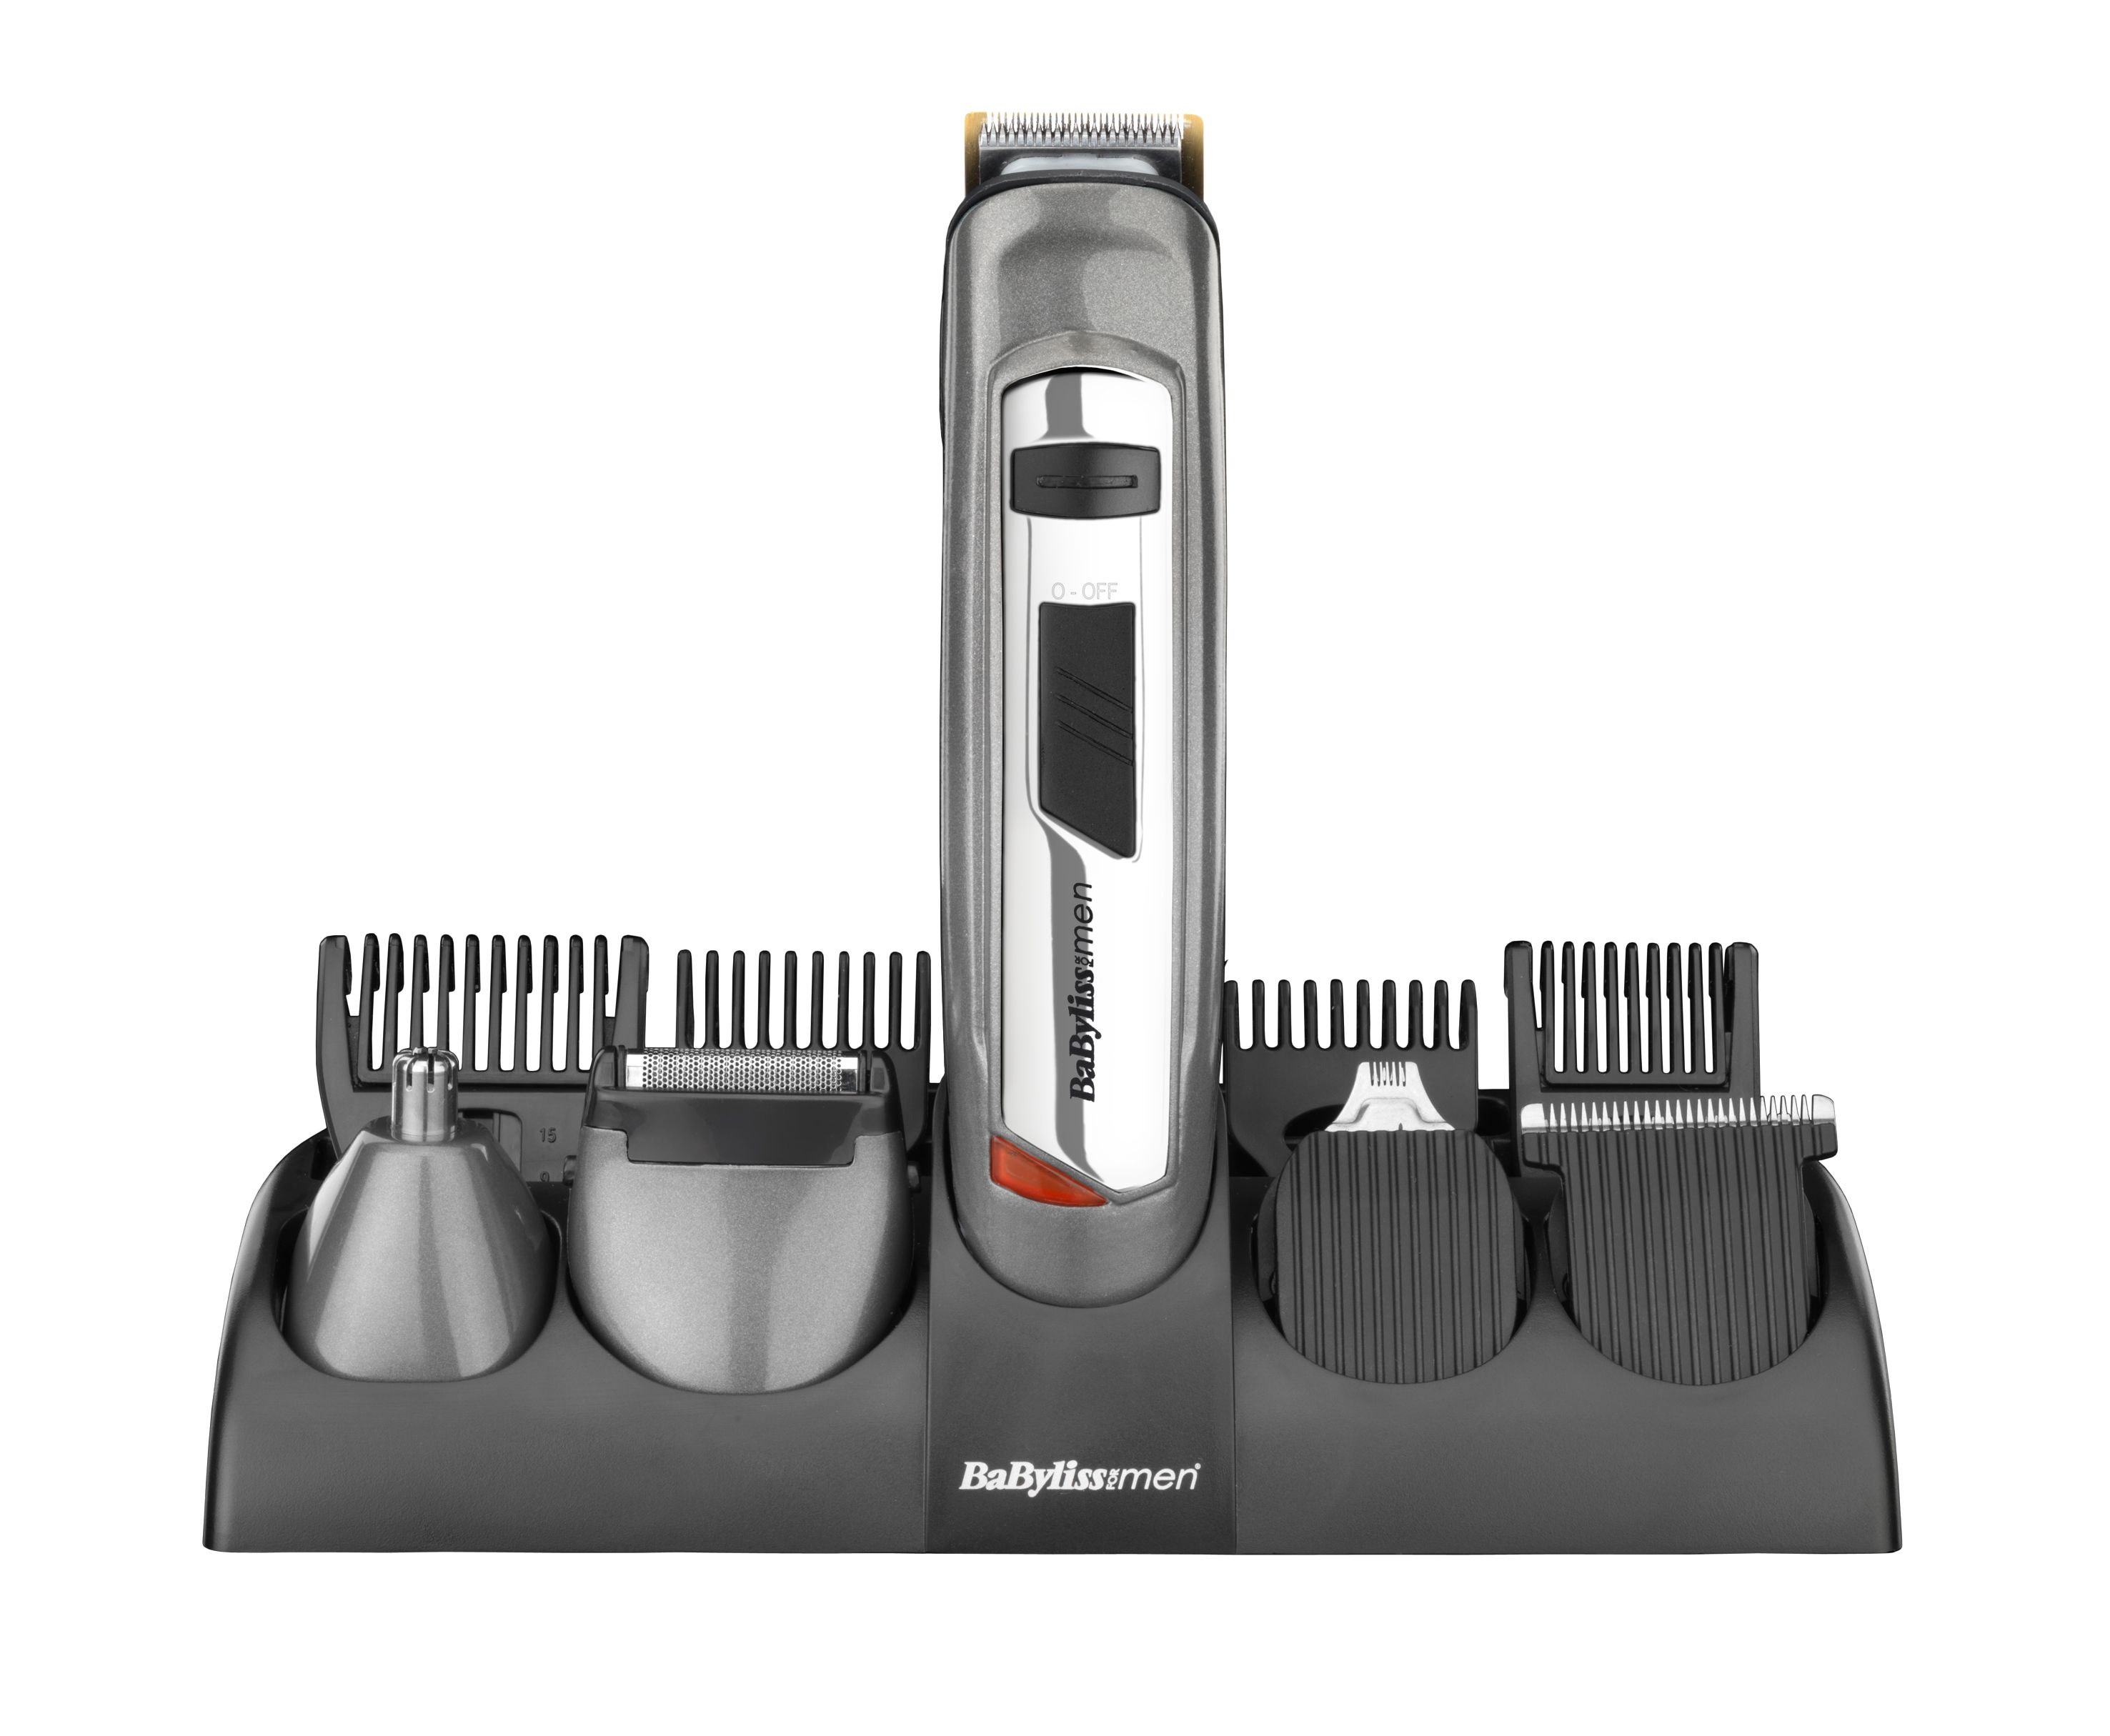 10-in-1 grooming system (model 7235U)